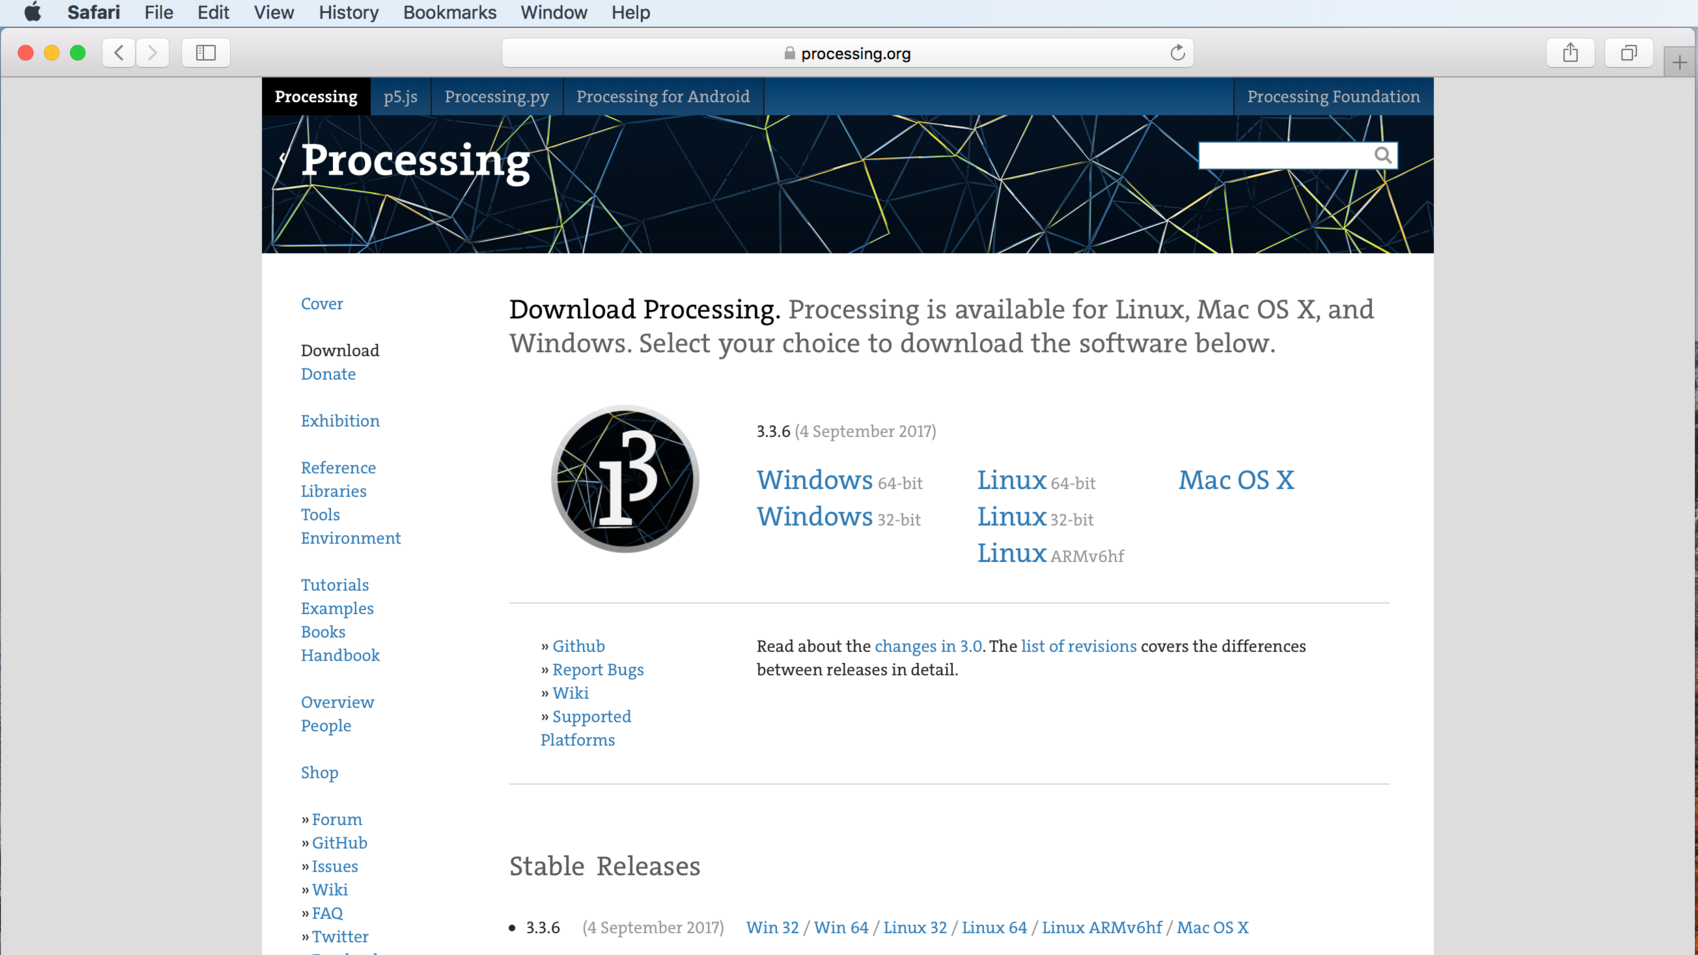 1. Download Processing